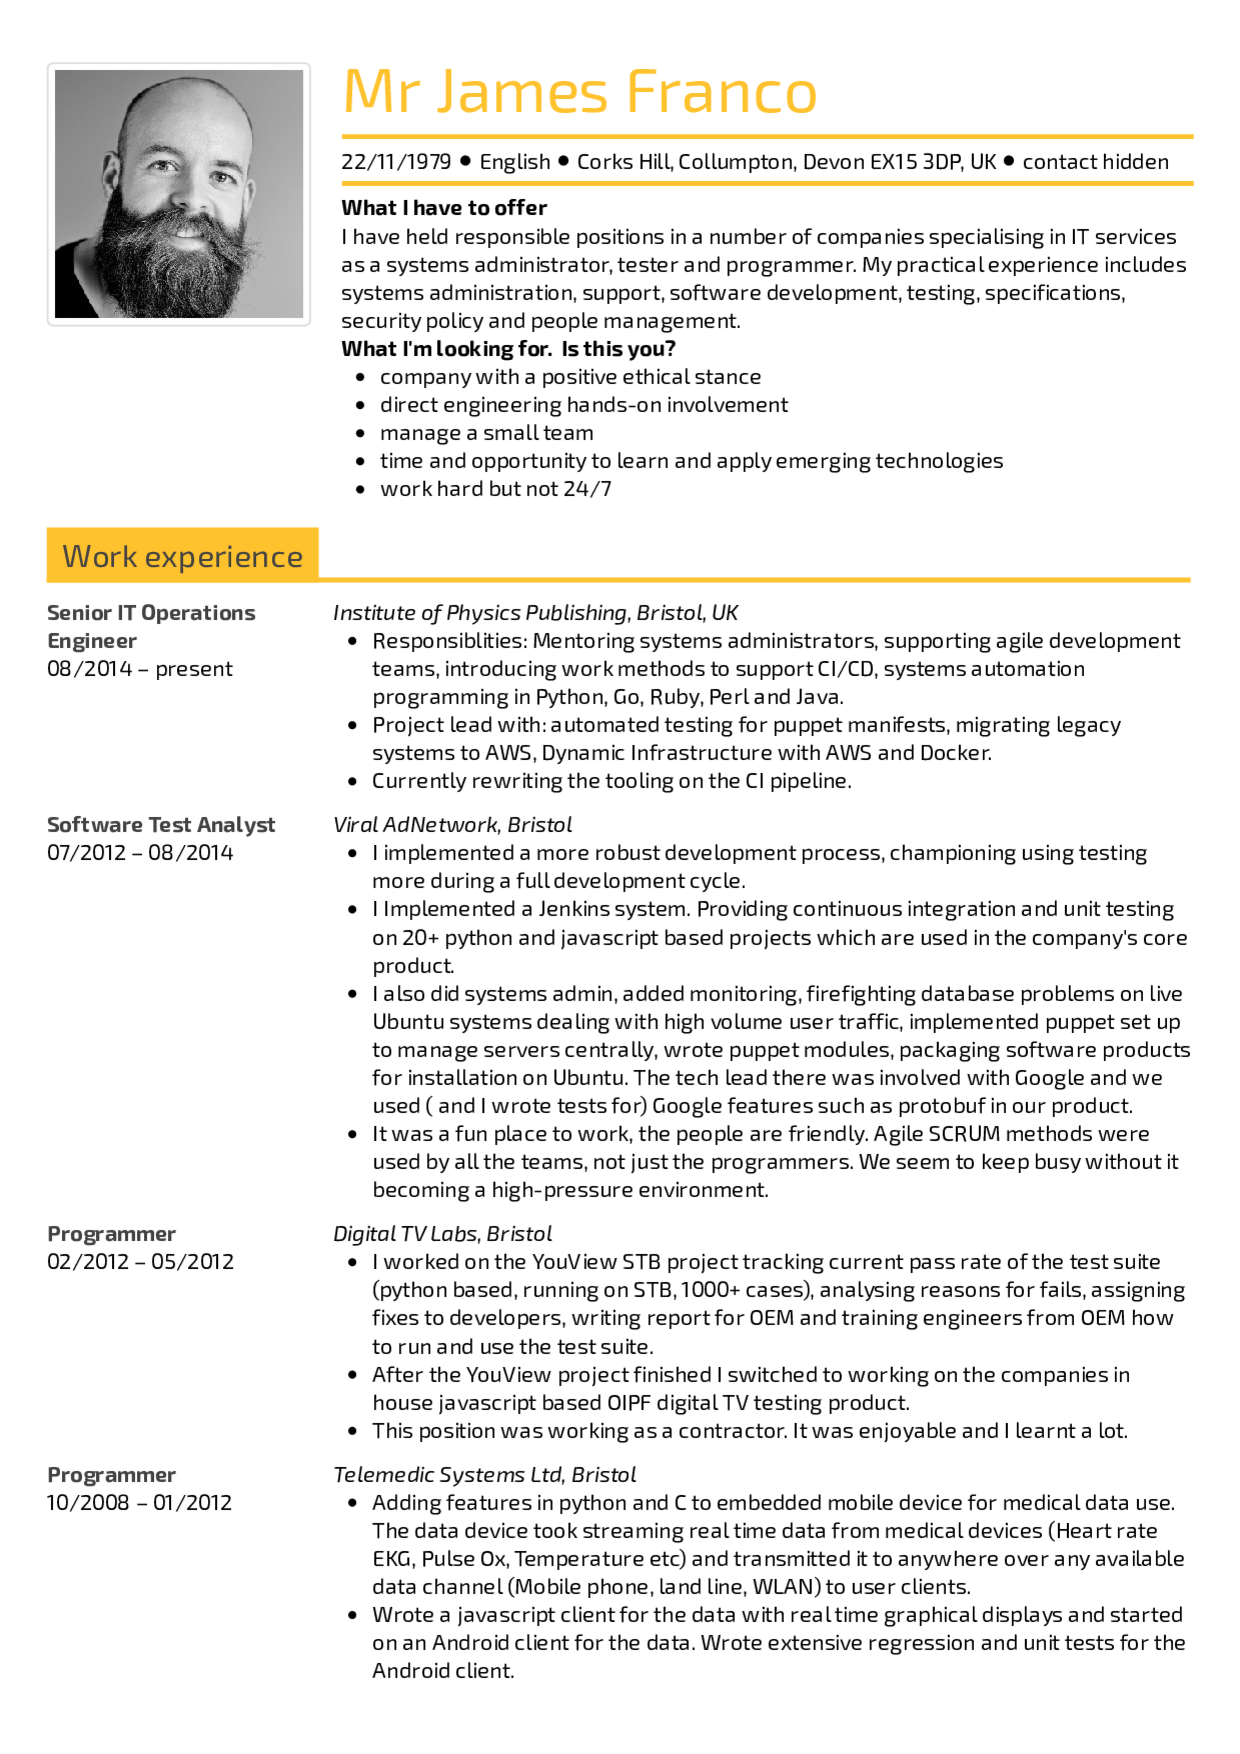 Resume Examples By Real People Senior It Operations Engineer Resume Image Result For Resume Resume E Resume Examples Engineering Resume Good Resume Examples